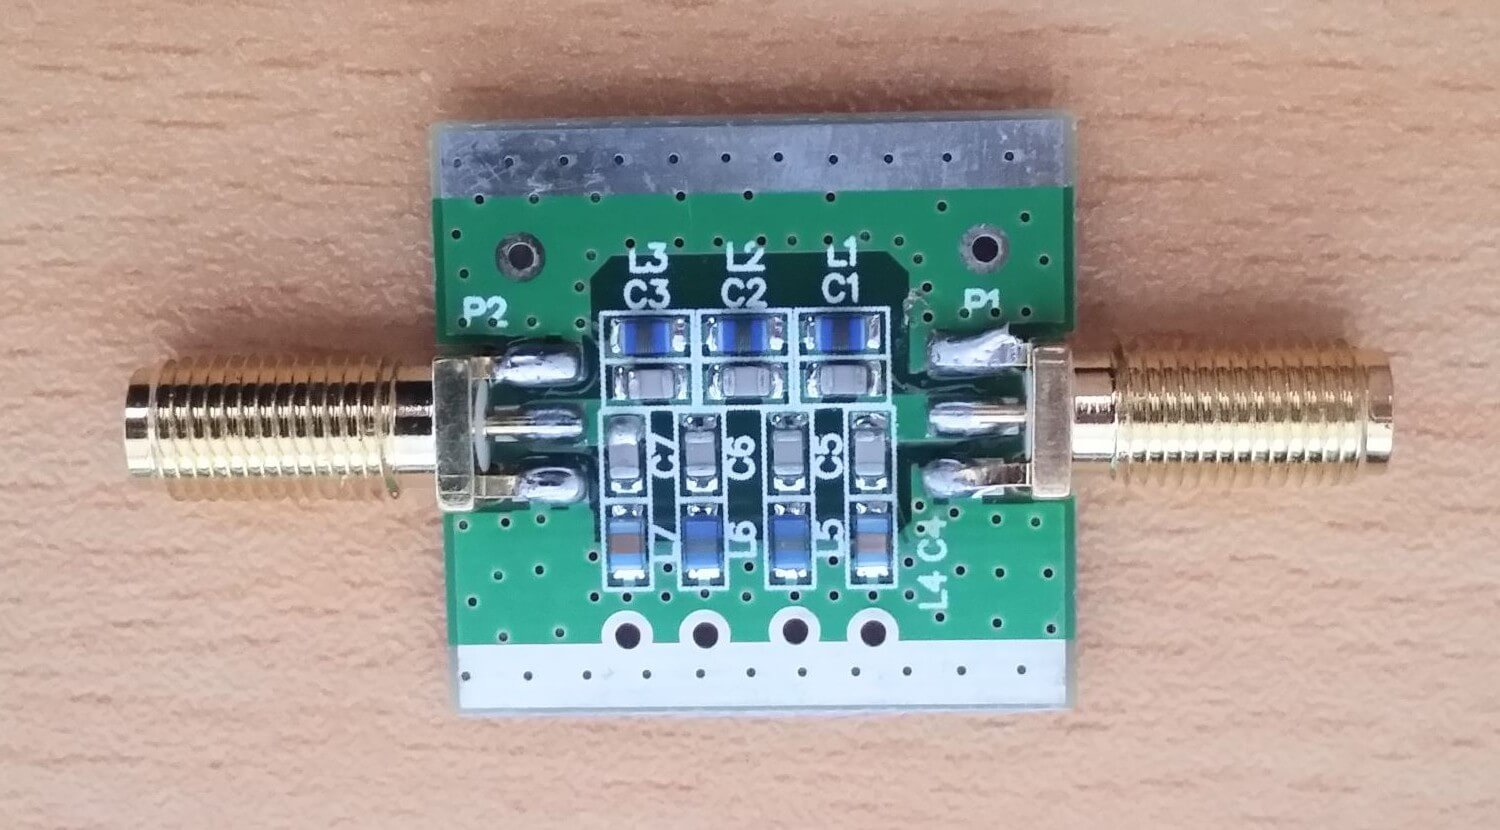 Broadcast Fm Band Stop Filter 88 108 Mhz Reject Now China Digital Receiver Circuit Board Assembly Production Bcfm Connected